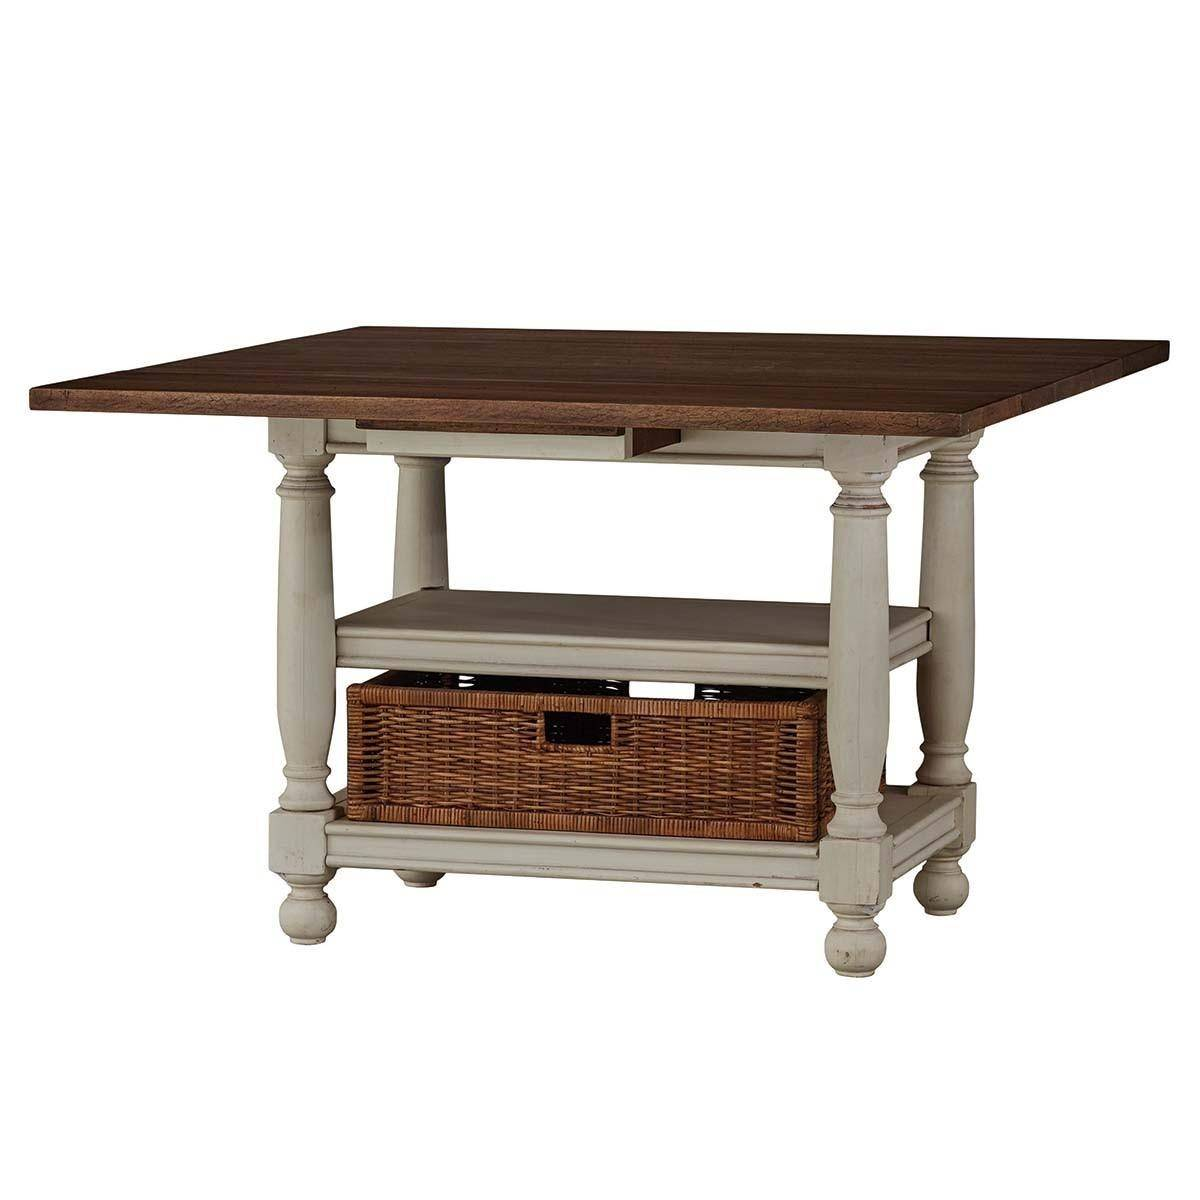 Bramble 25799 Vintage Drop Leaf Kitchen Table Solid Wood ...